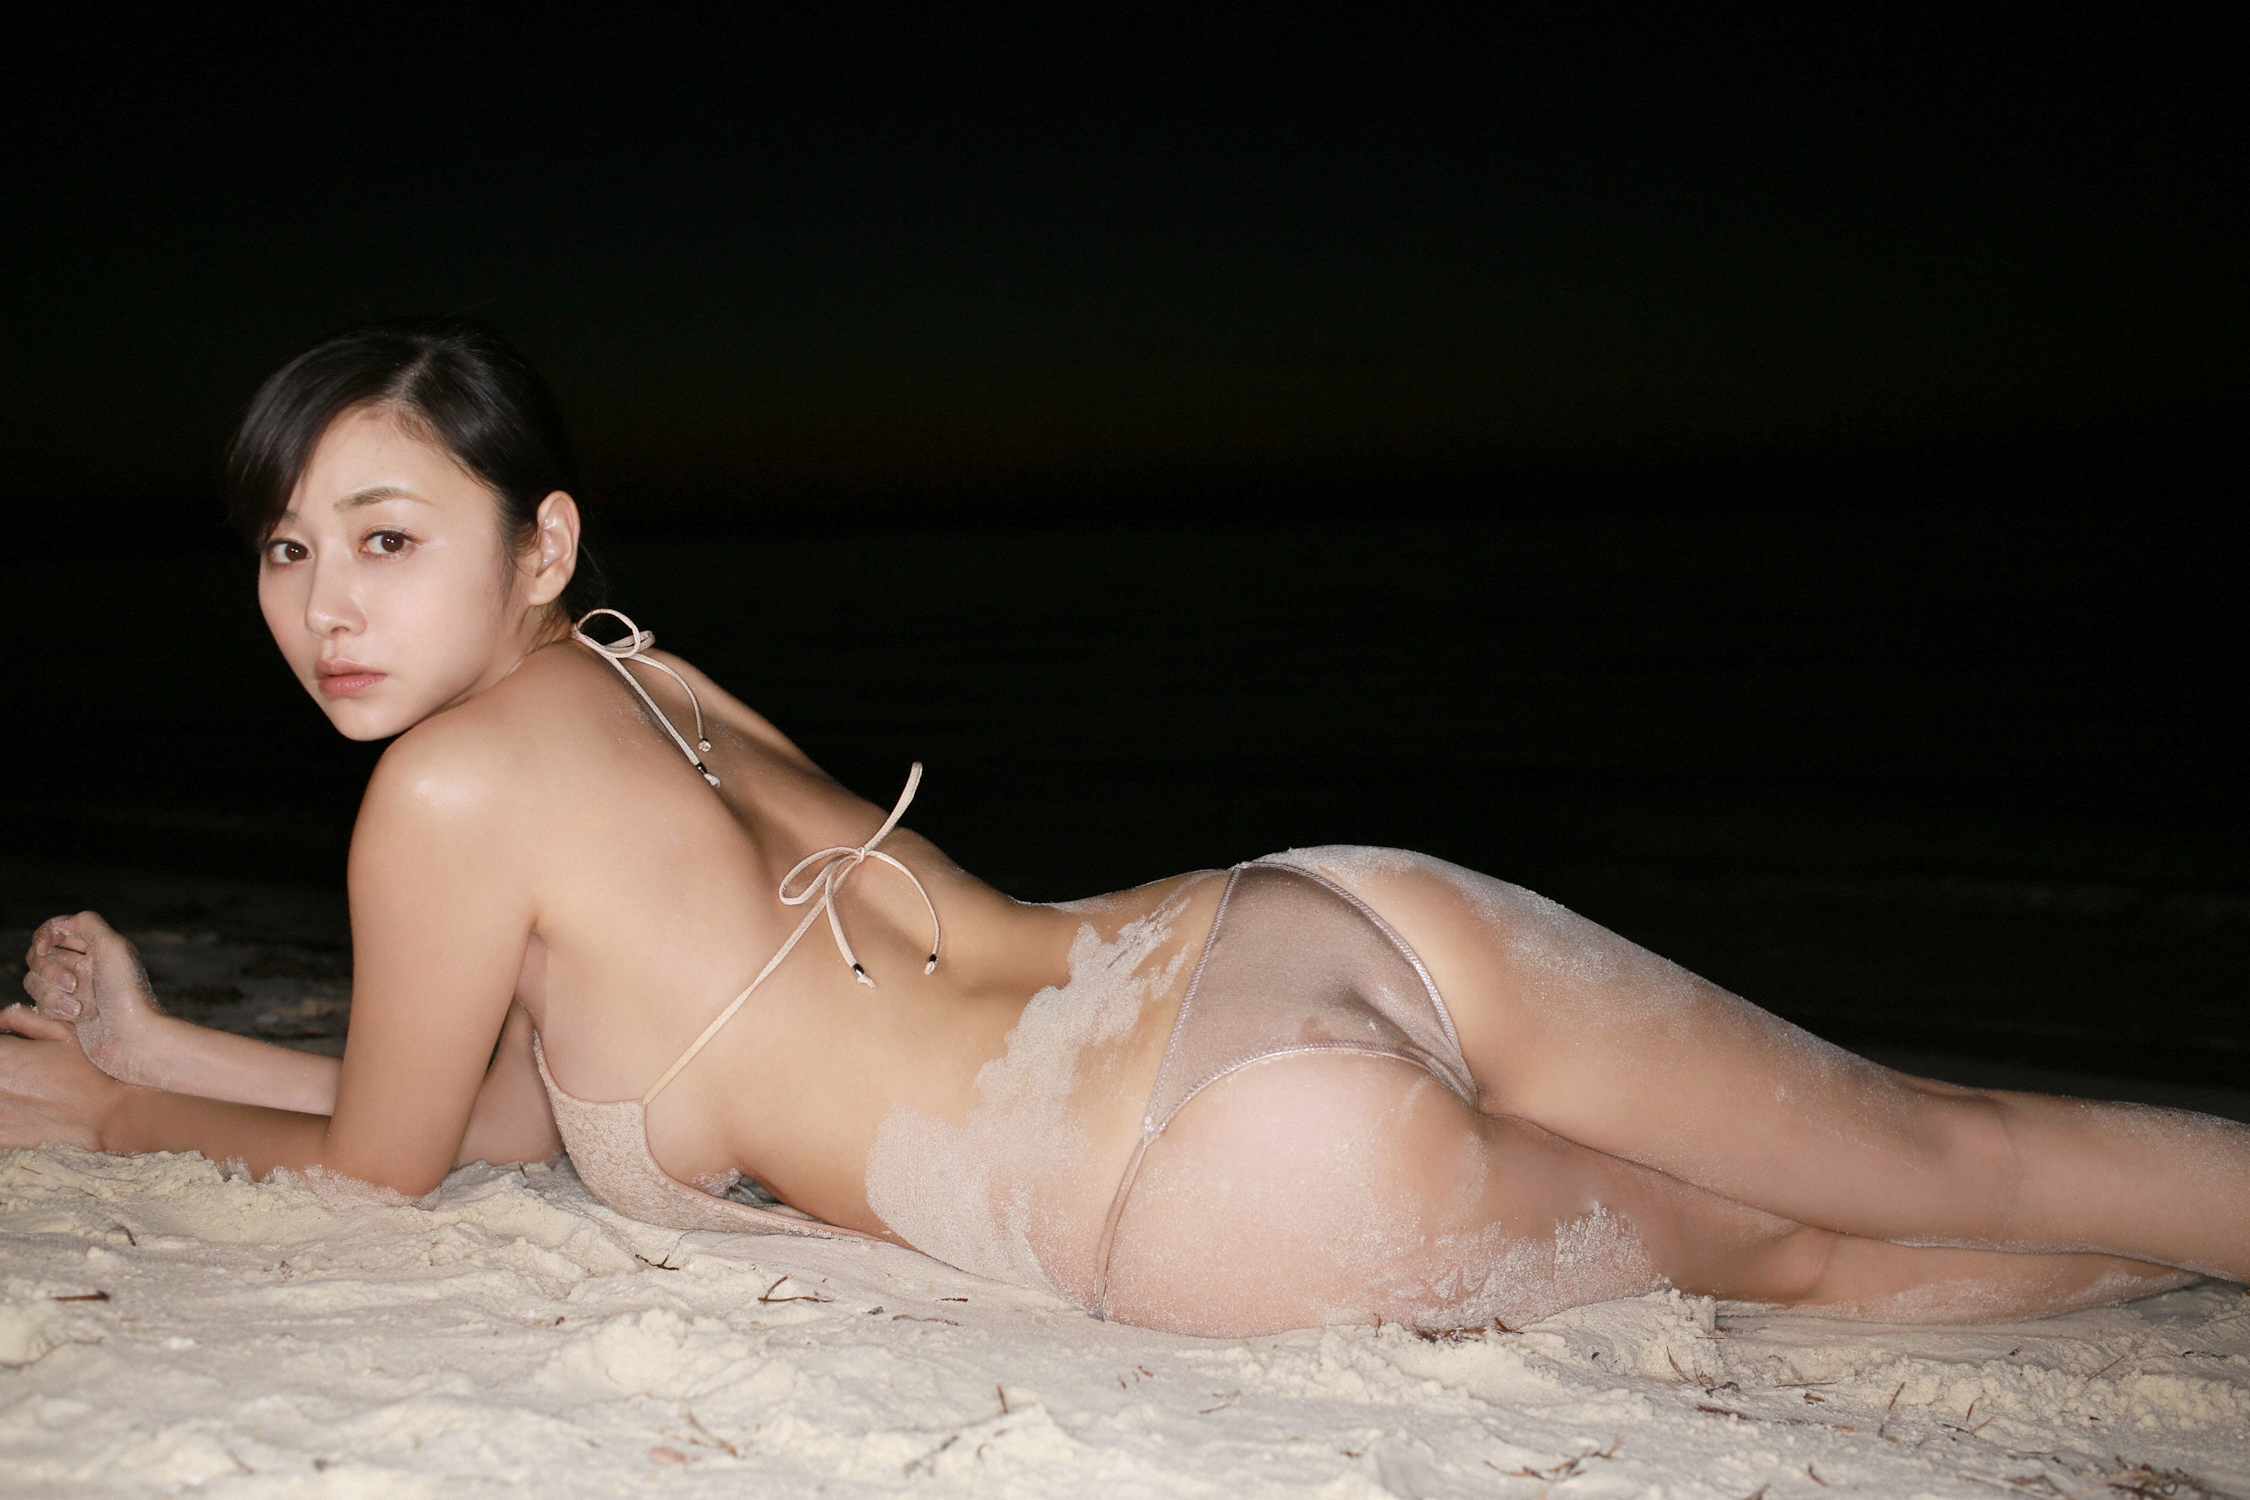 杉原杏璃 Anri Sugihara YS Web Vol 655 Pictures 74